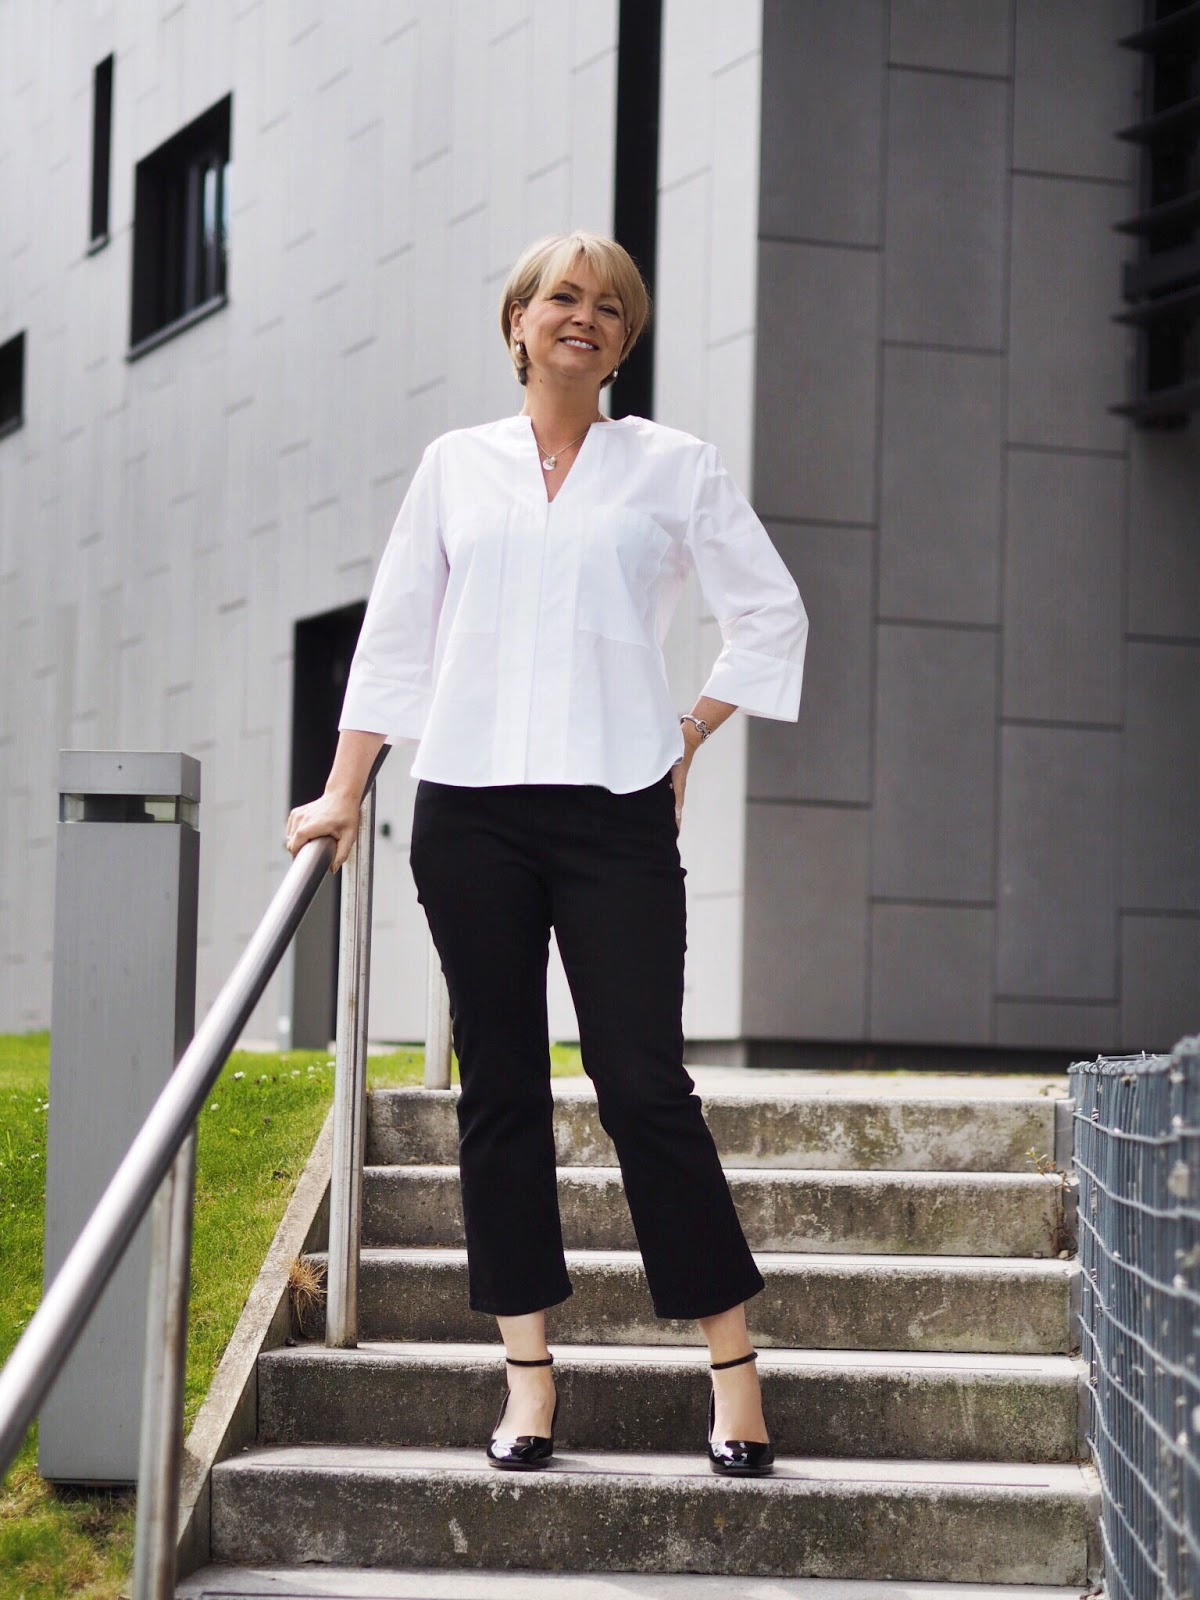 Nikki, Midlife Chic, Marks and Spencer white top and denim challenge